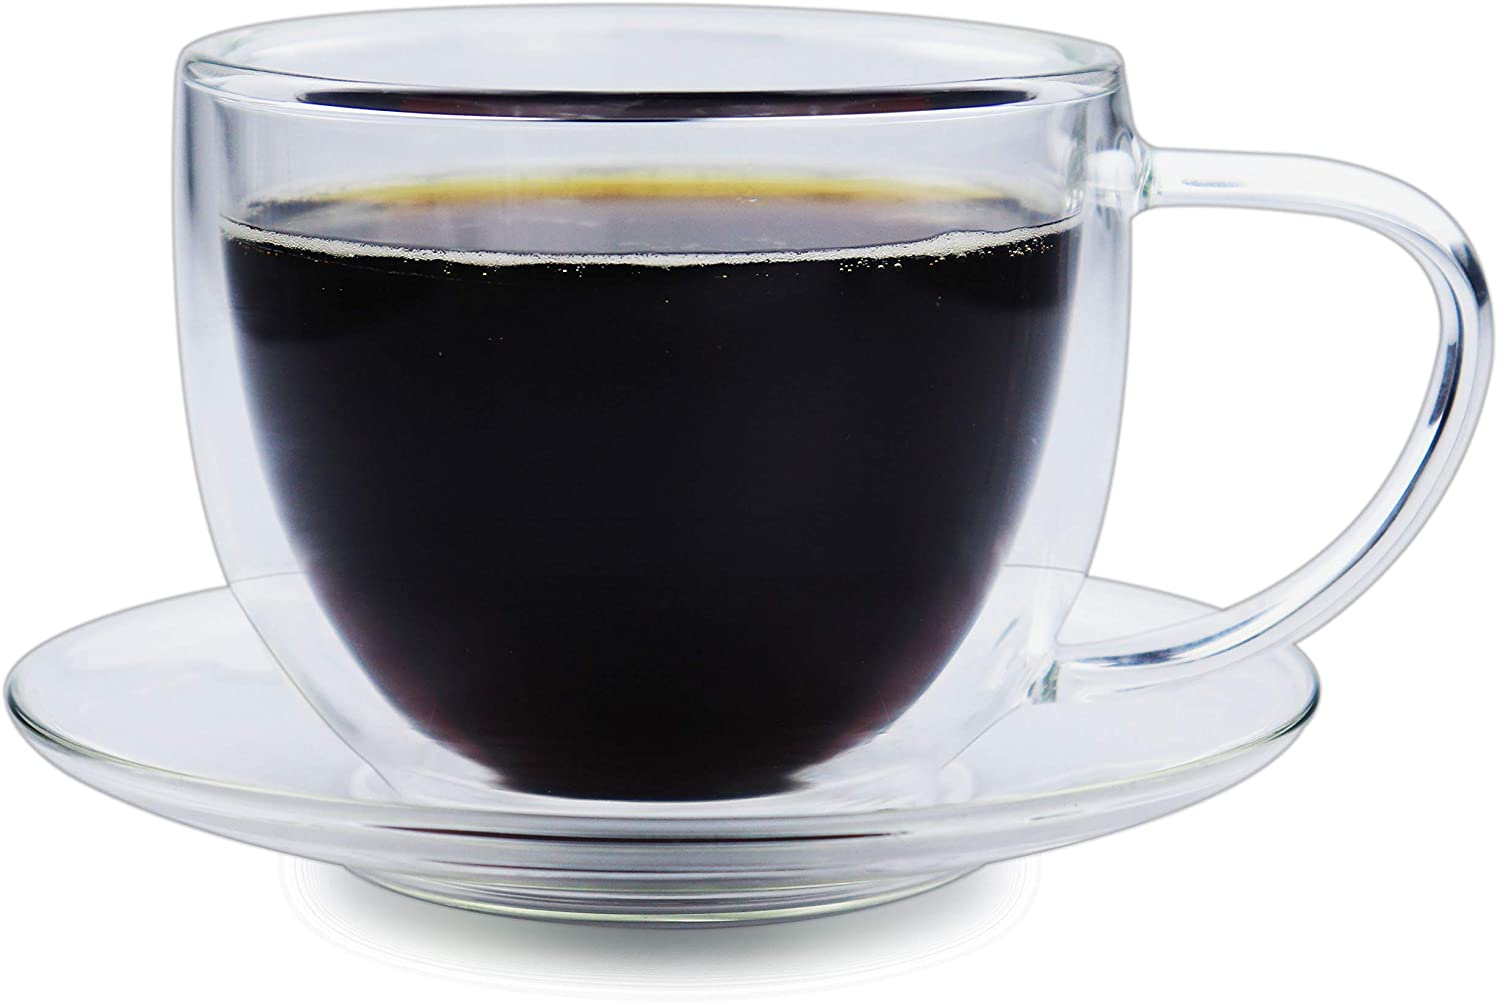 Espresso Coffee Cup with Saucer - 7 Ounce (220ml) Clear Double Wall Glass with Large Handle - Great for Drink, Latte, Cappuccino and Tea, BE020, by BothEarn